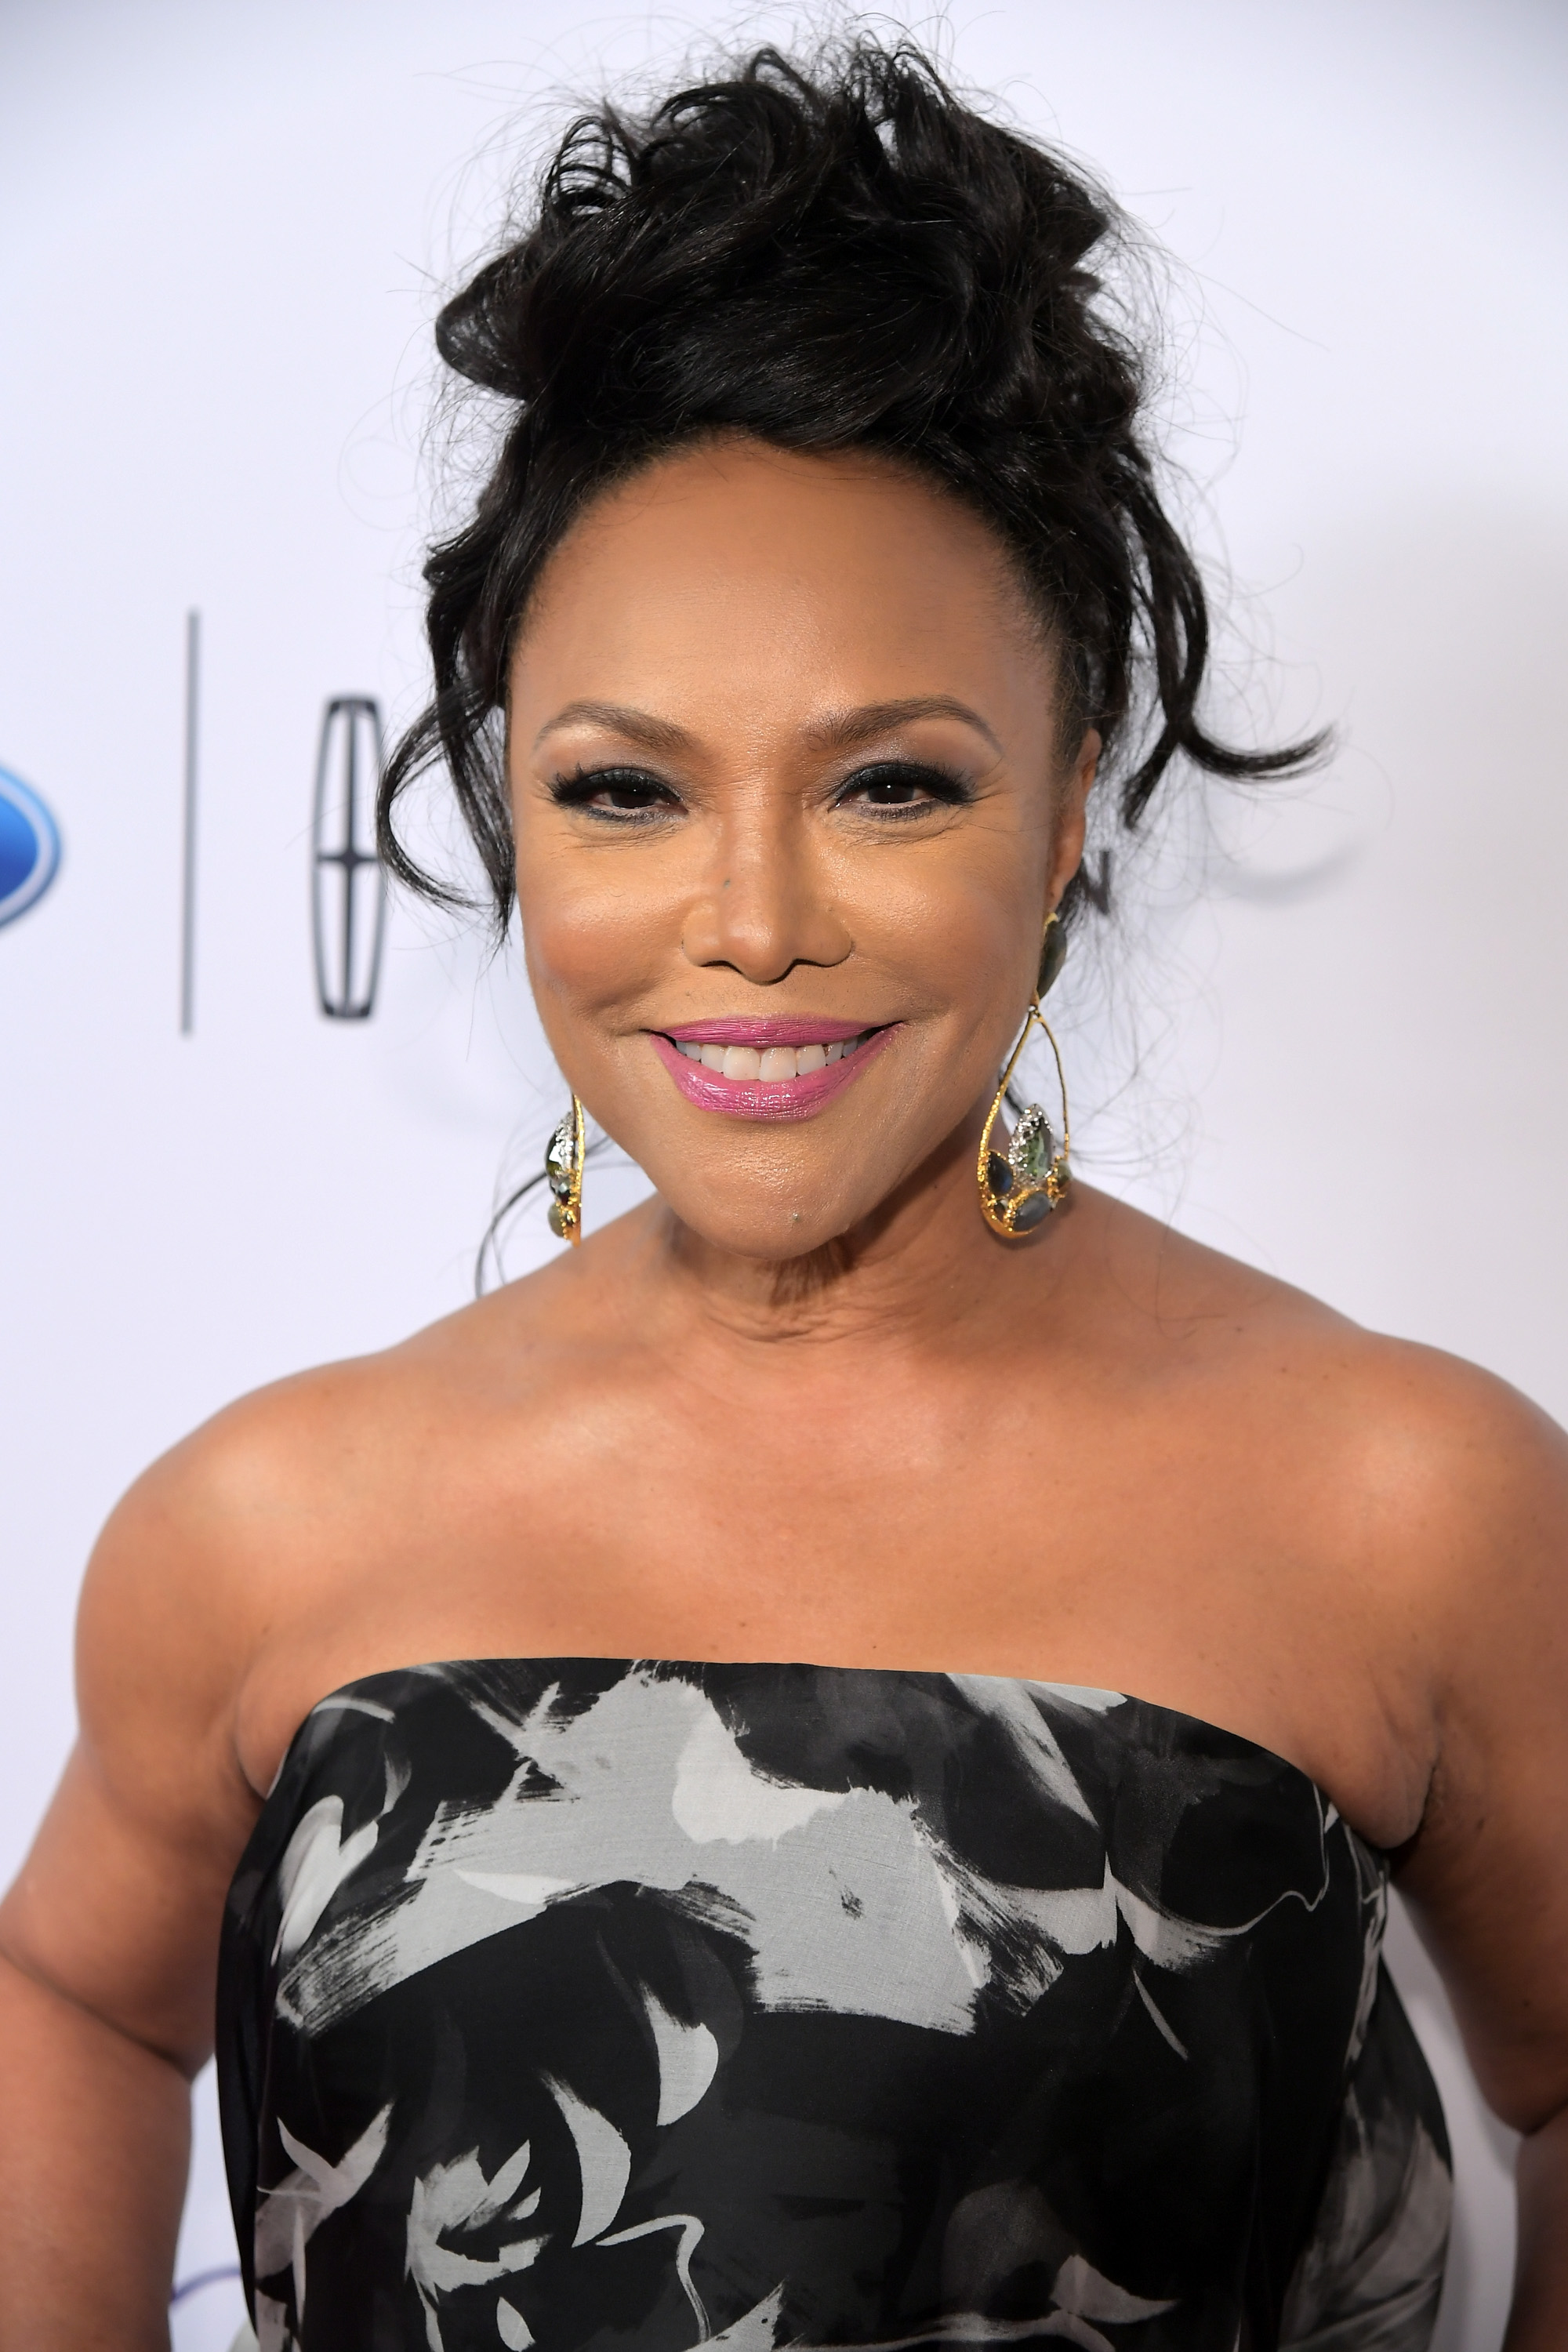 Actor Lynn Whitfield attends the 42nd Annual Gracie Awards Gala, hosted by The Alliance for Women in Media at the Beverly Wilshire Hotel on June 6, 2017, in Beverly Hills, California (Getty Images)